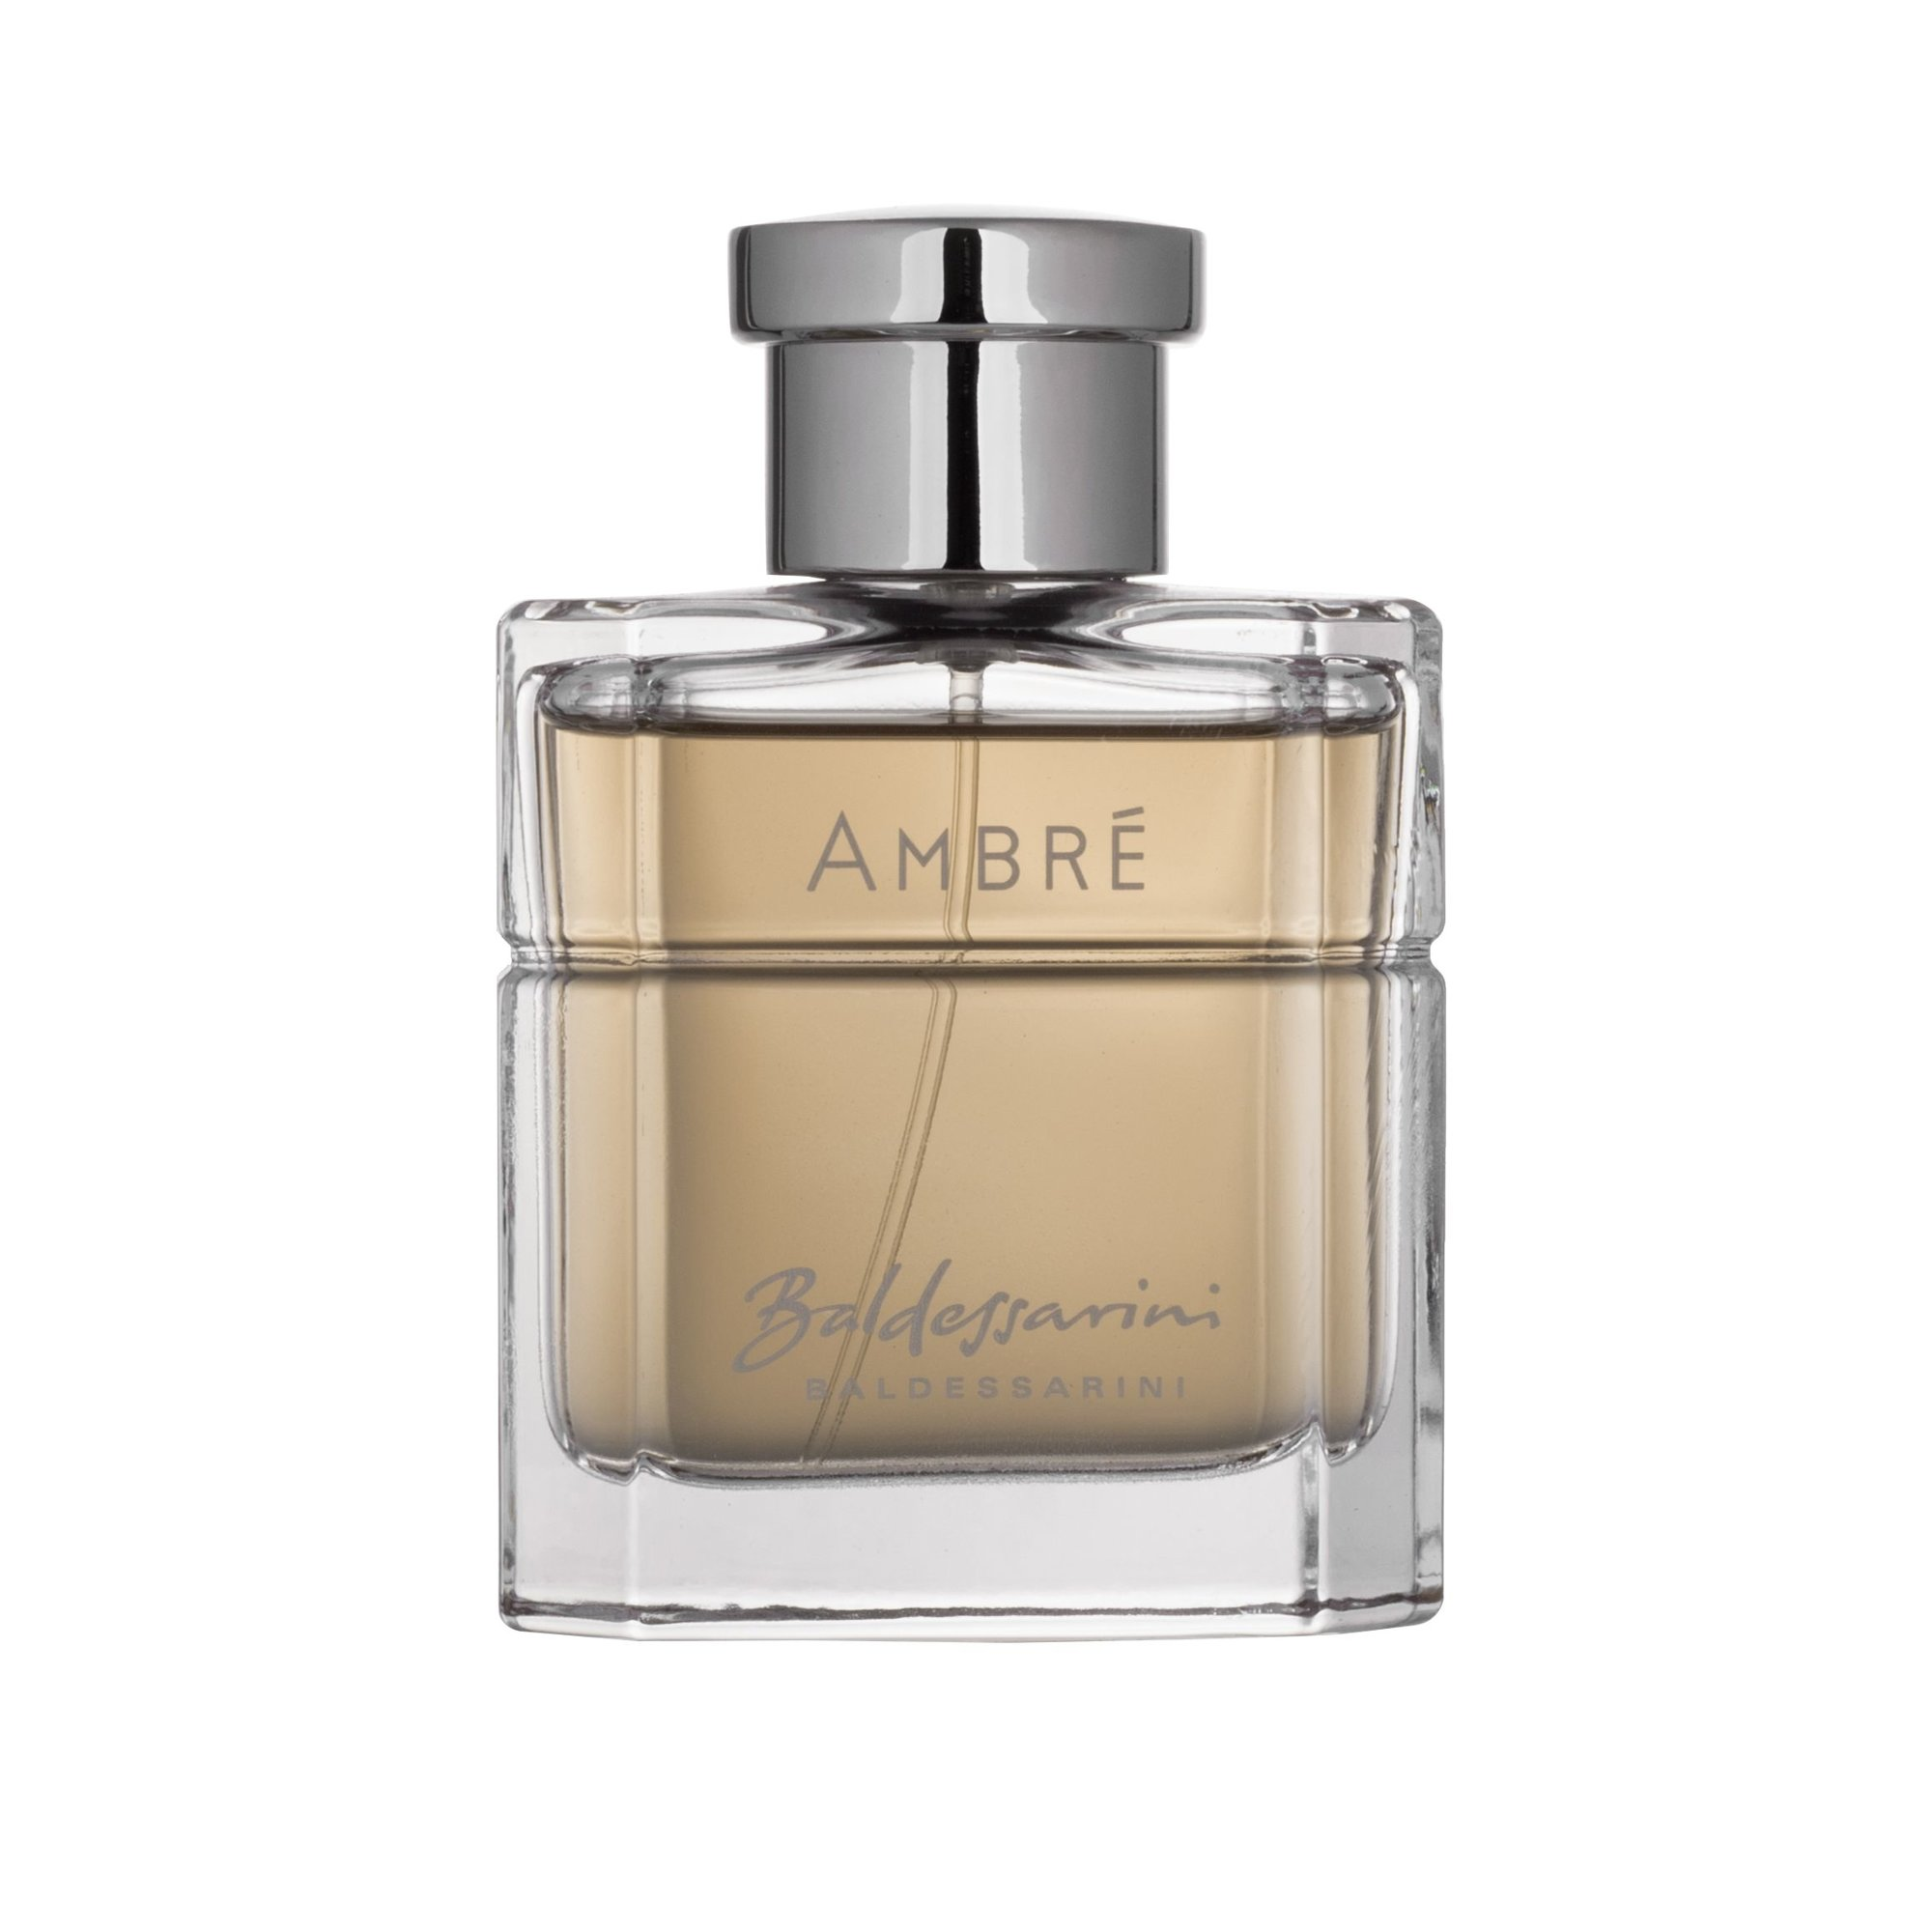 Baldessarini Ambré EDT 50ml